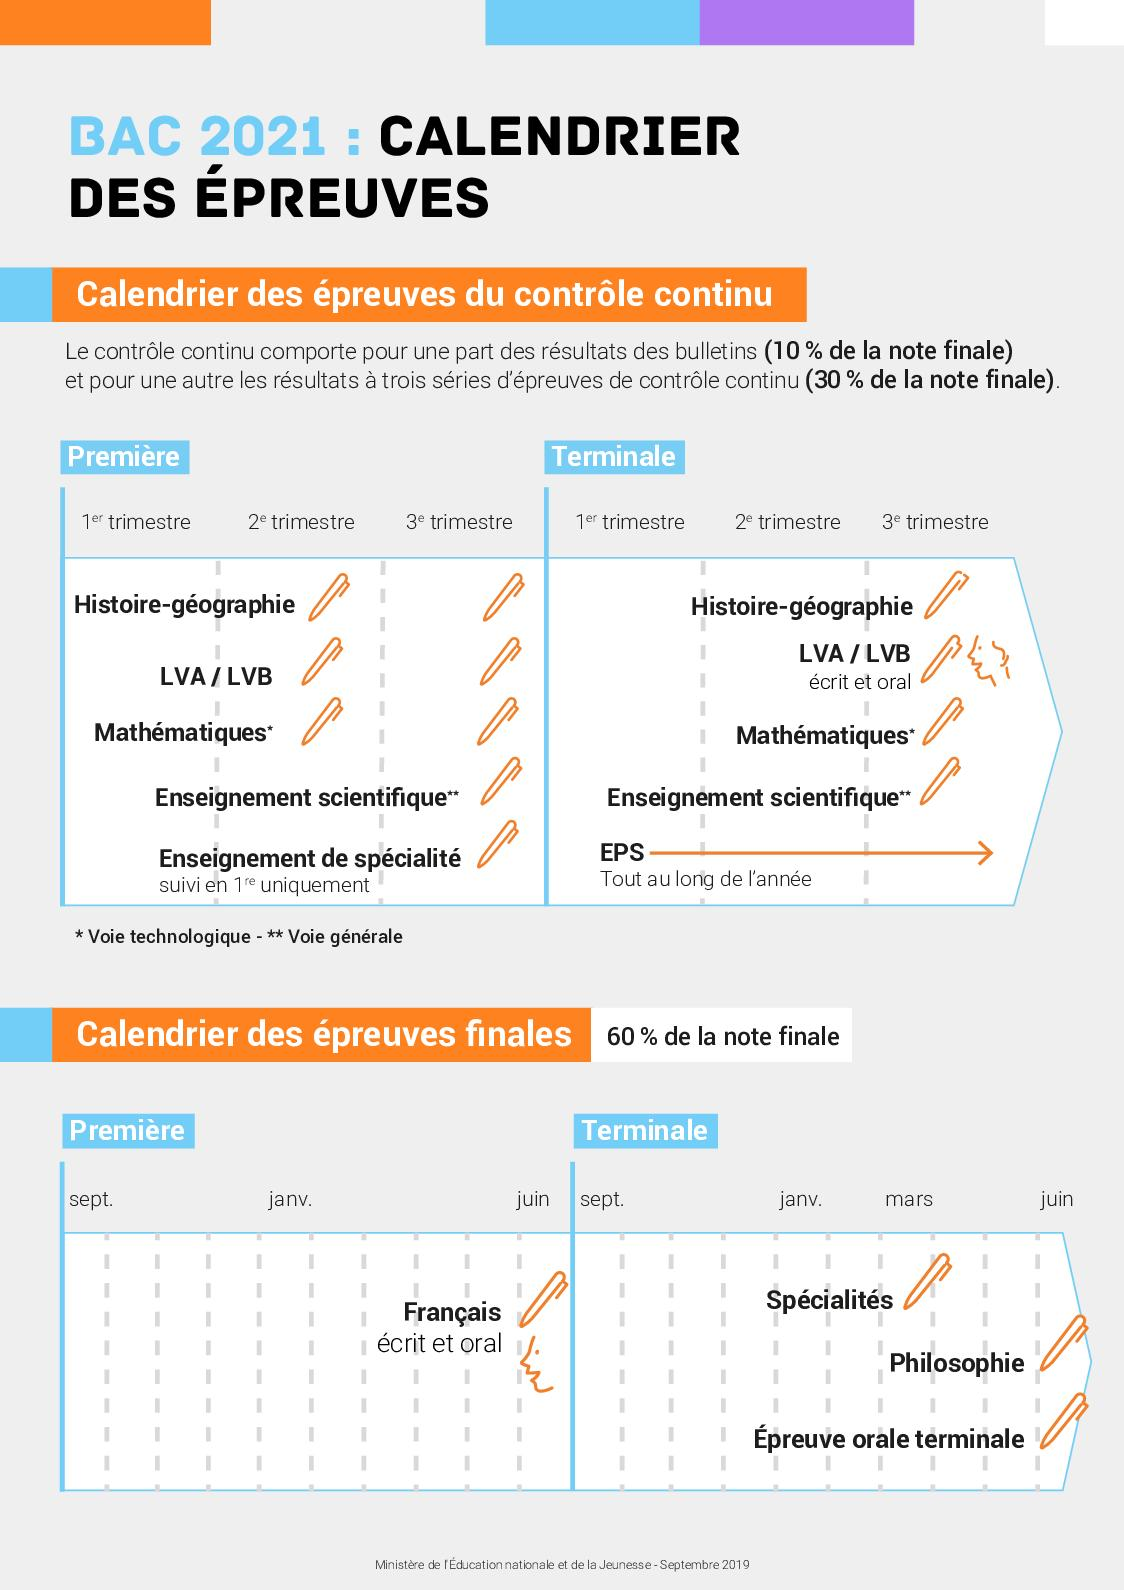 Calendrier Baccalauréat 2021 Calaméo   Bac2021 Epreuves Calendrier Duree